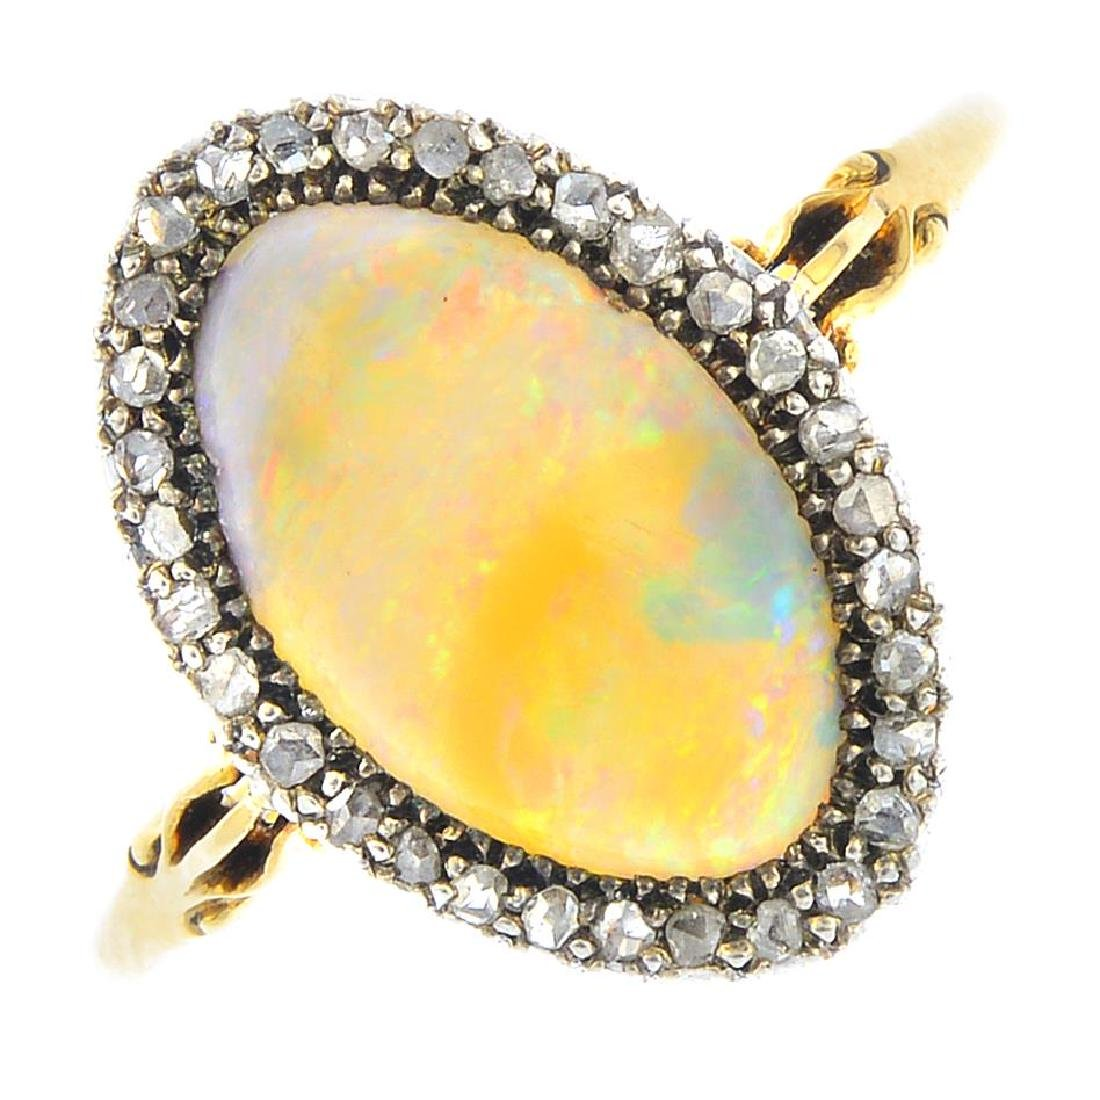 An early 20th century silver and 18ct gold, opal and